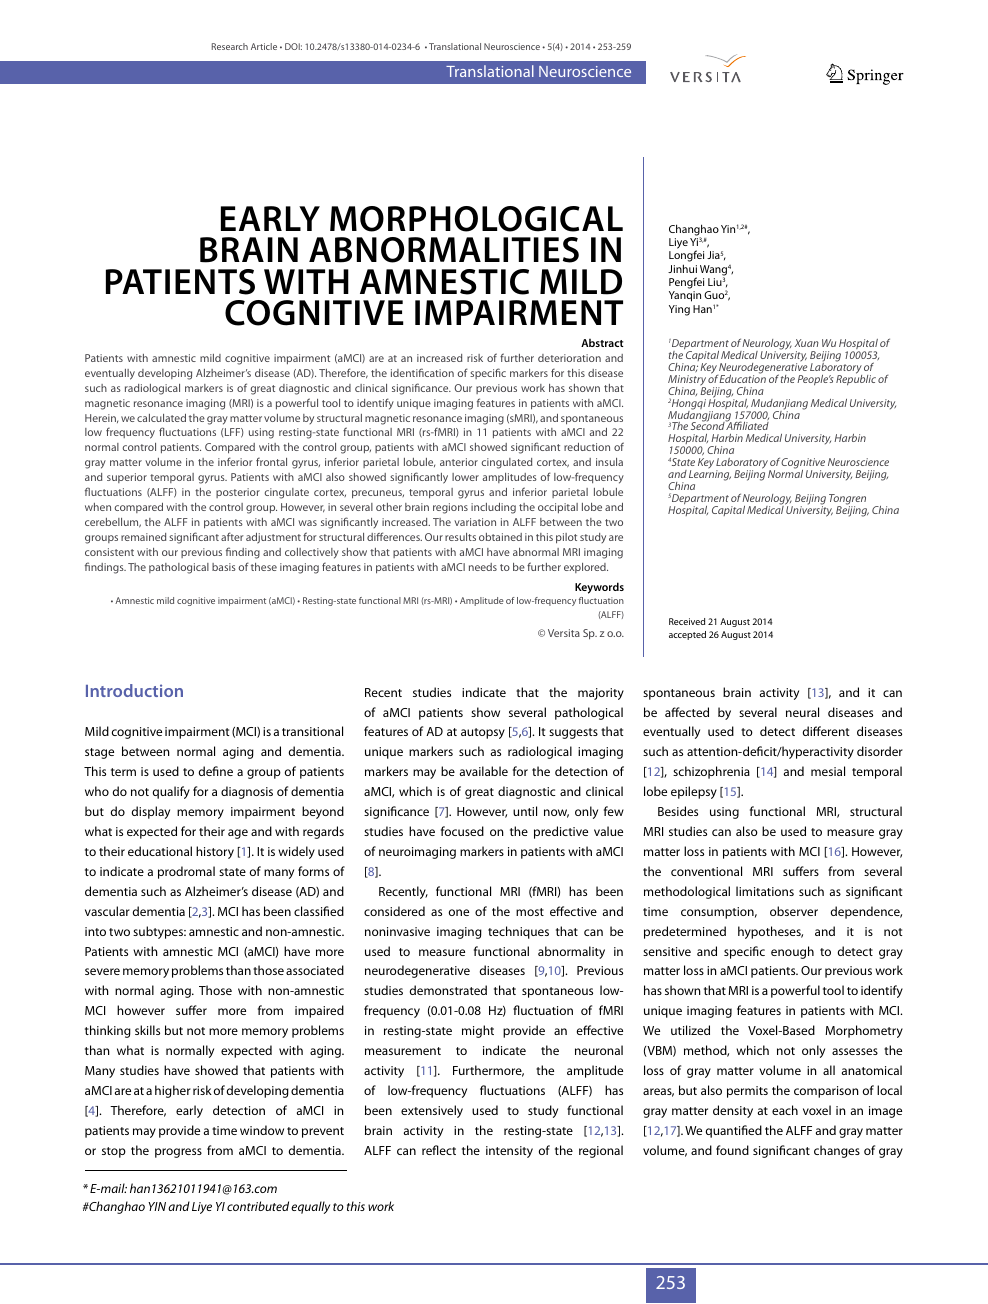 Early morphological brain abnormalities in patients with